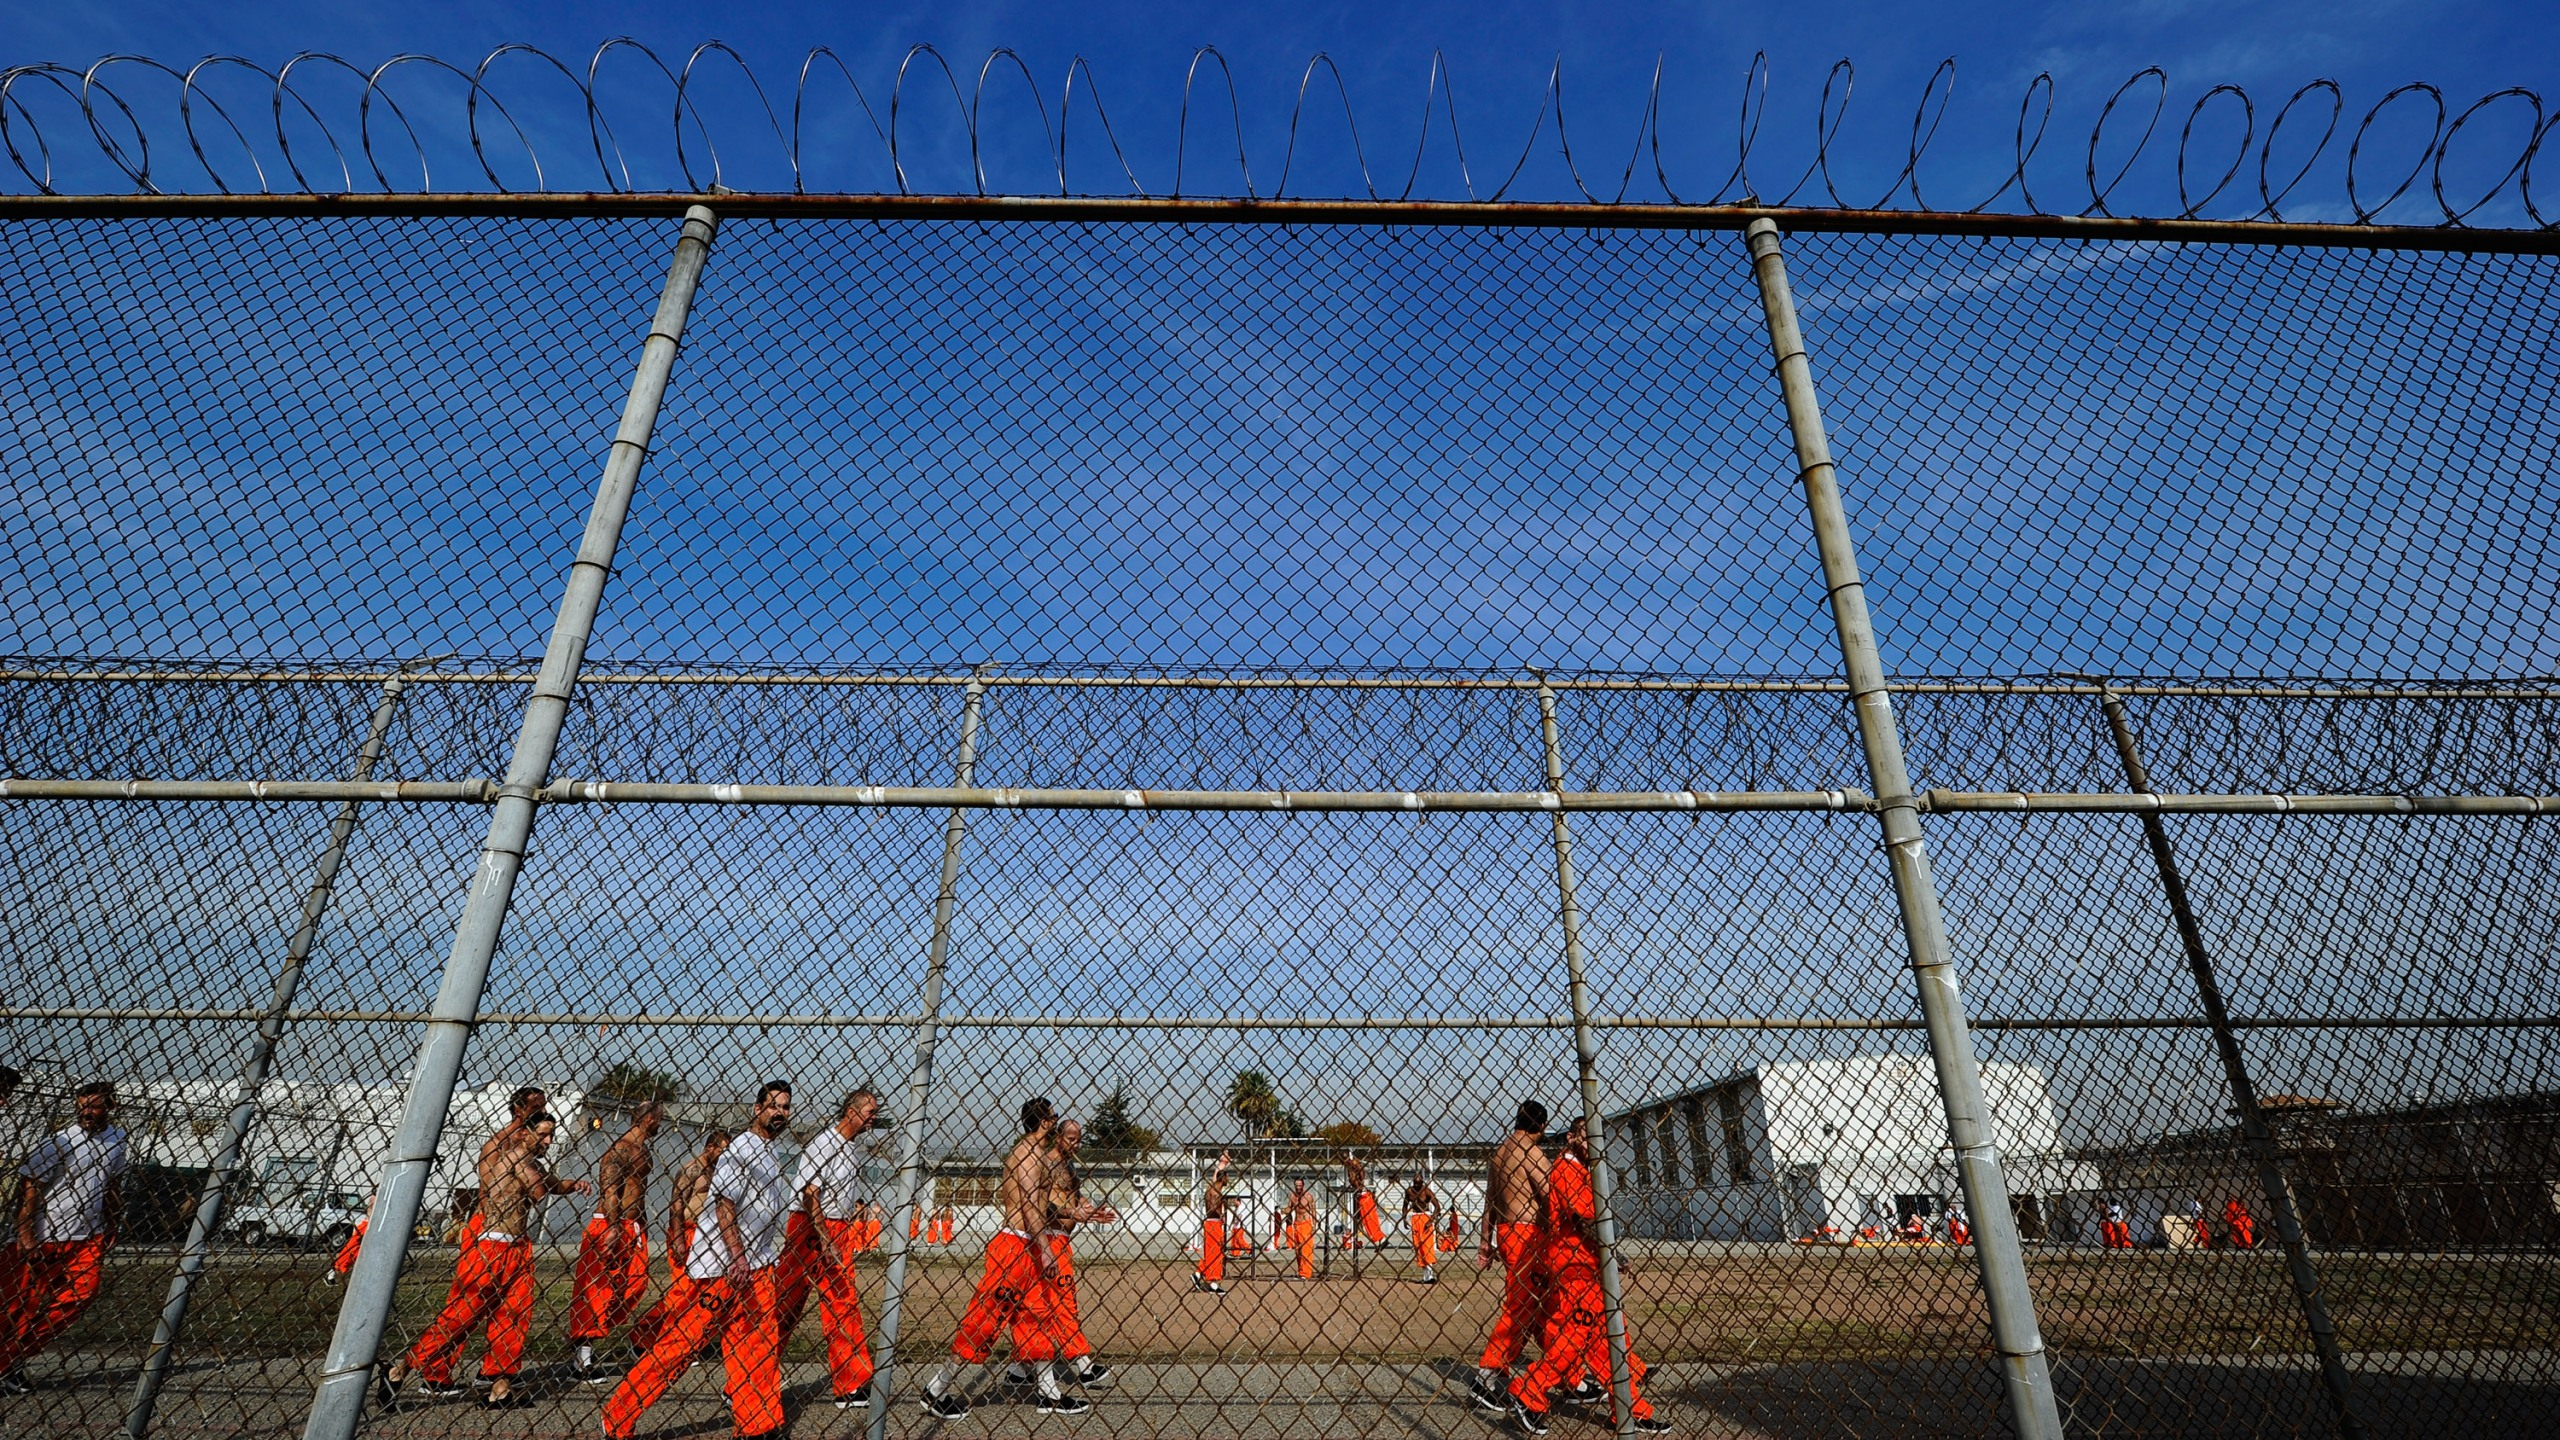 Inmates at the California Institution for Men in Chino exercise in the yard Dec. 10, 2010, in Chino, Calif. (Credit: Kevork Djansezian/Getty Images)